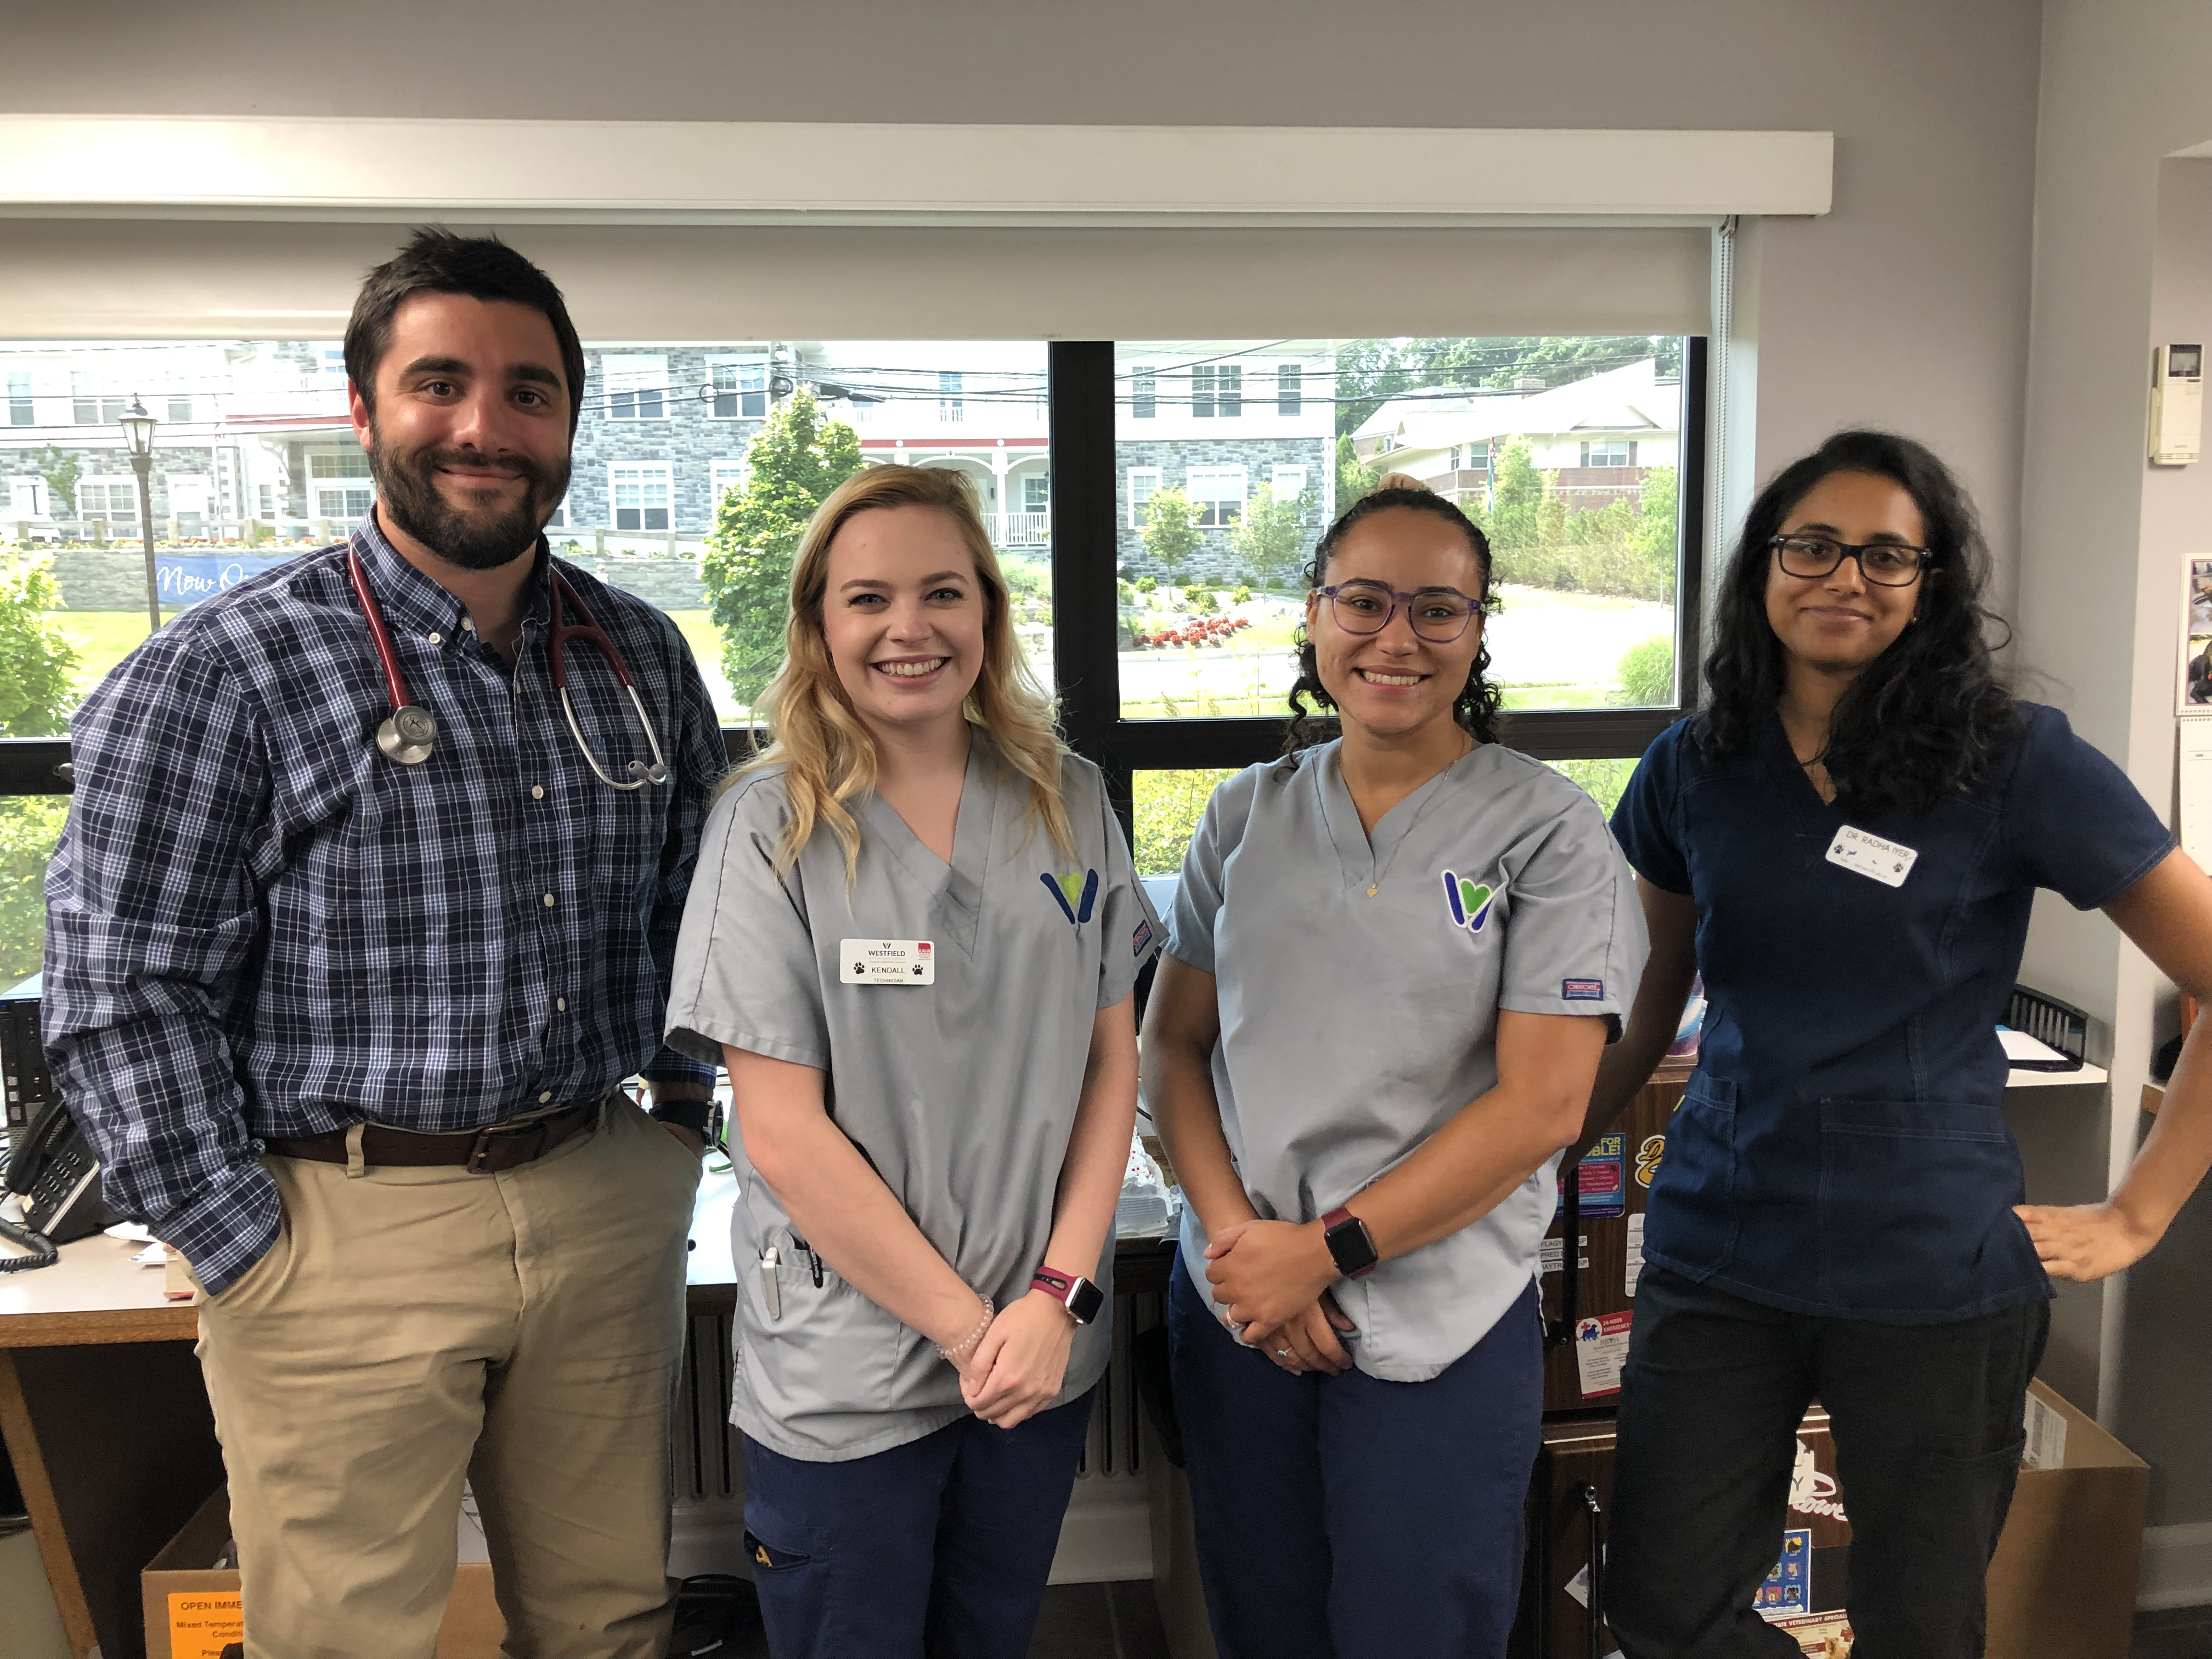 Westfield veterinary technicians and education team